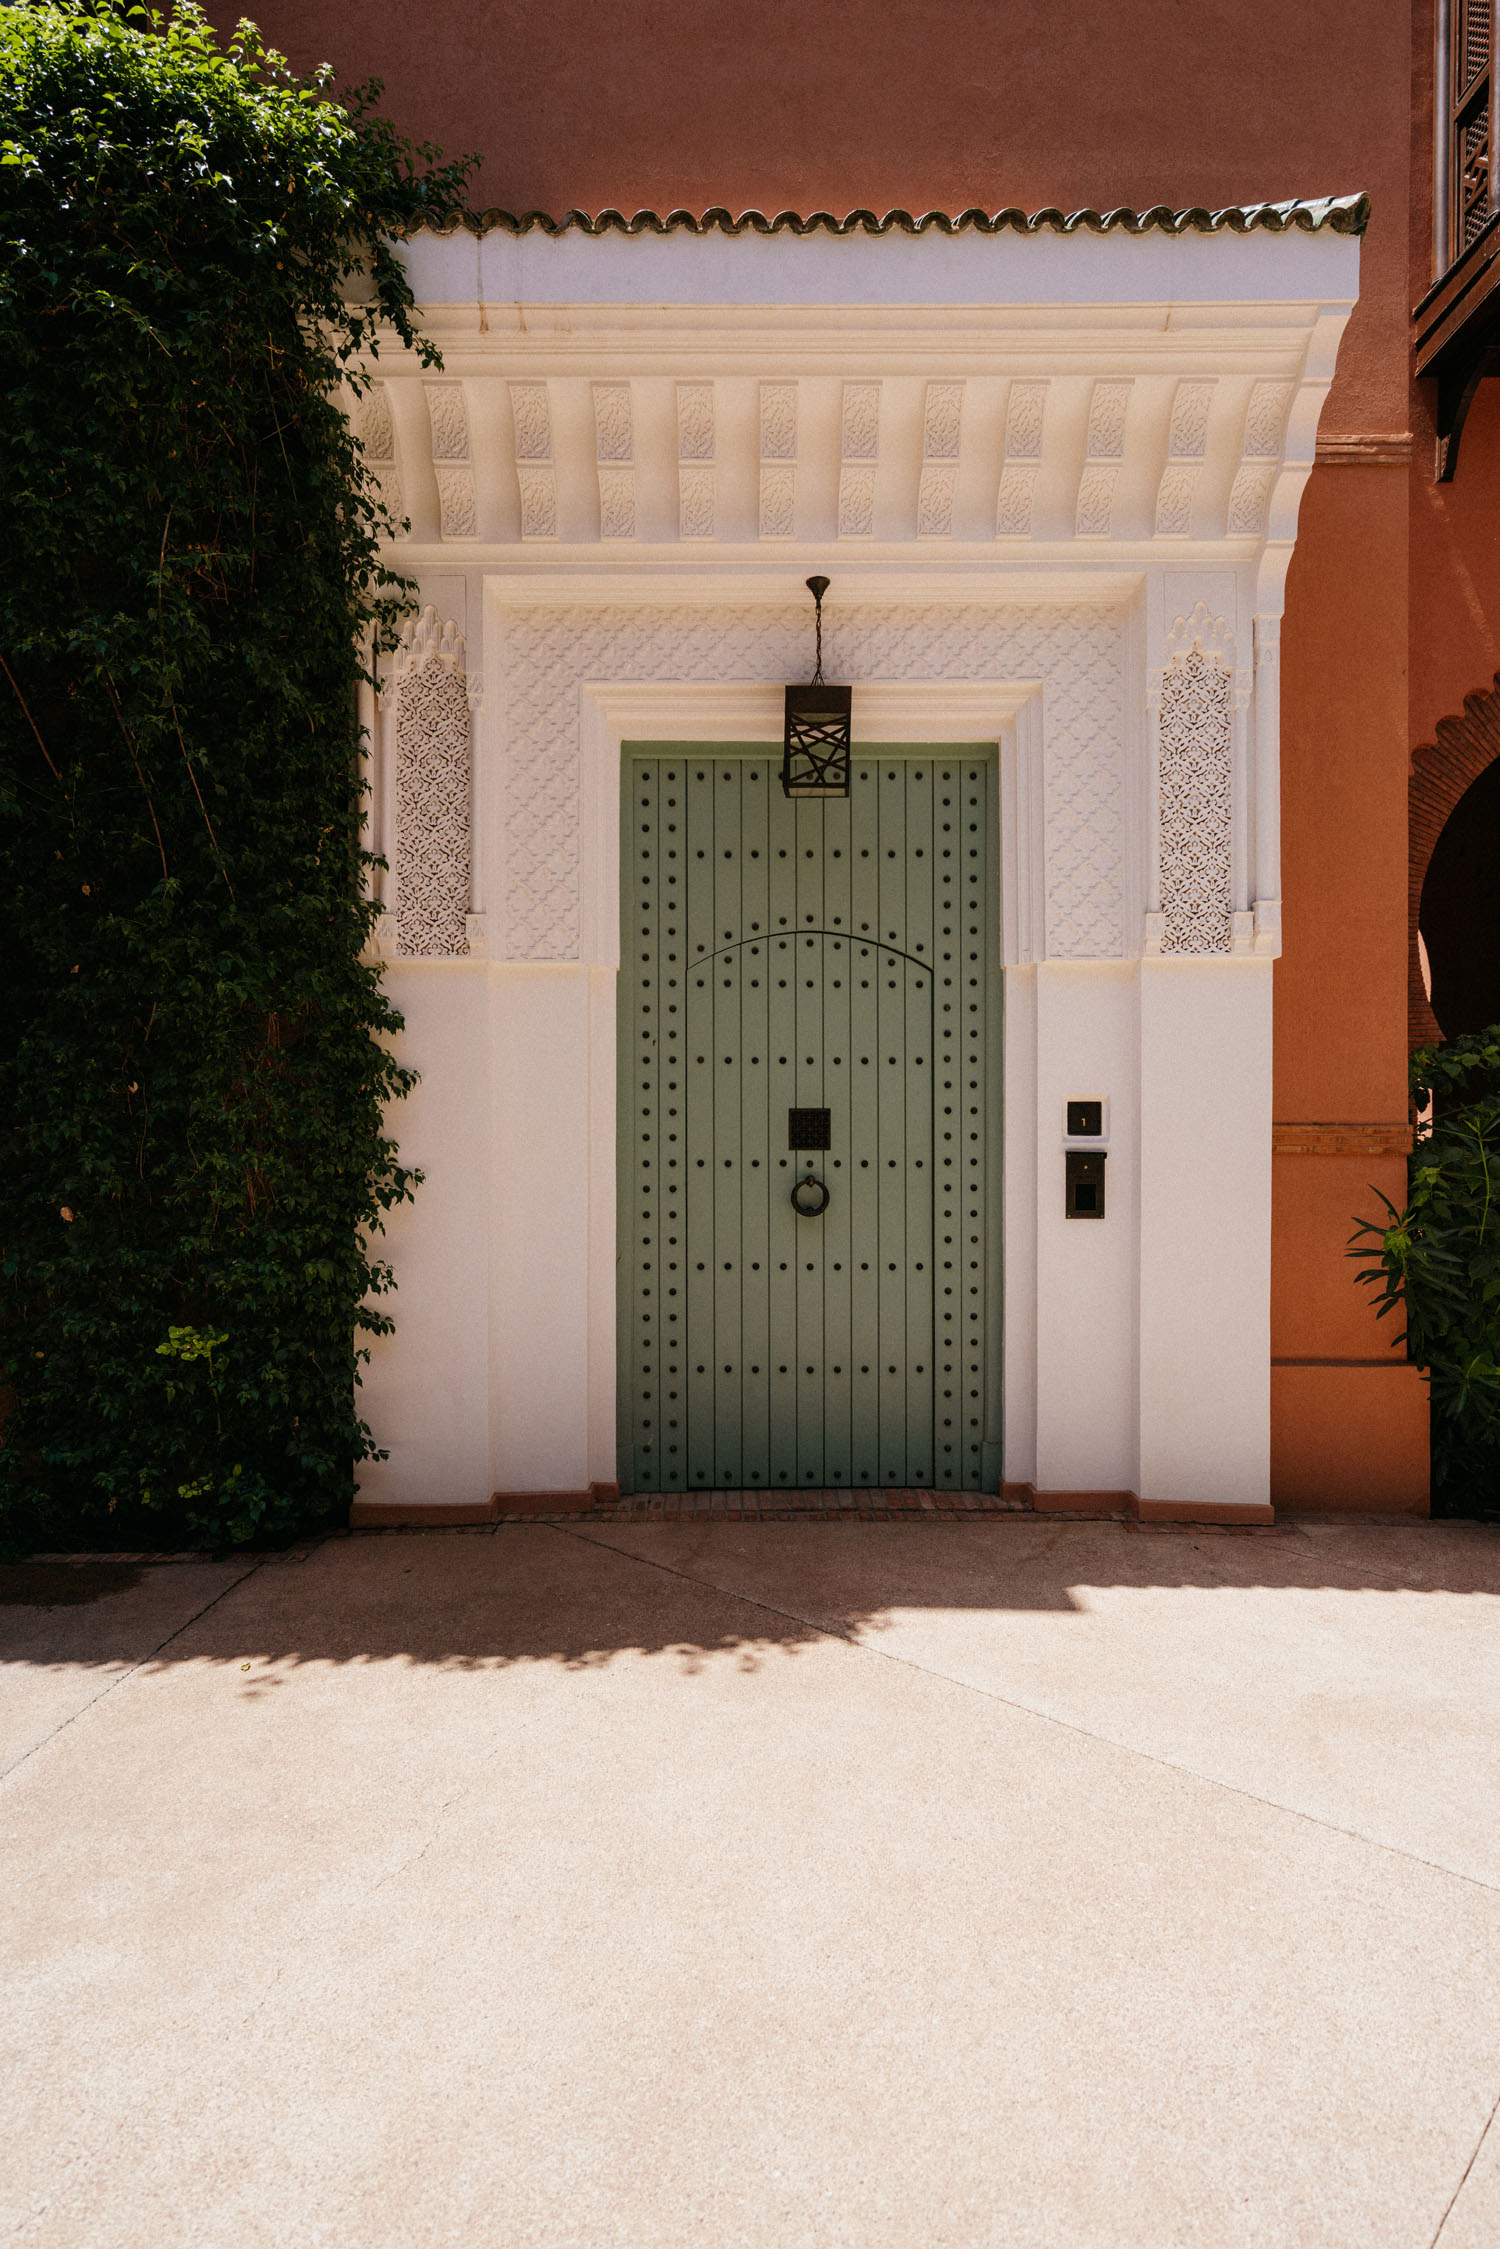 Door to our riad!